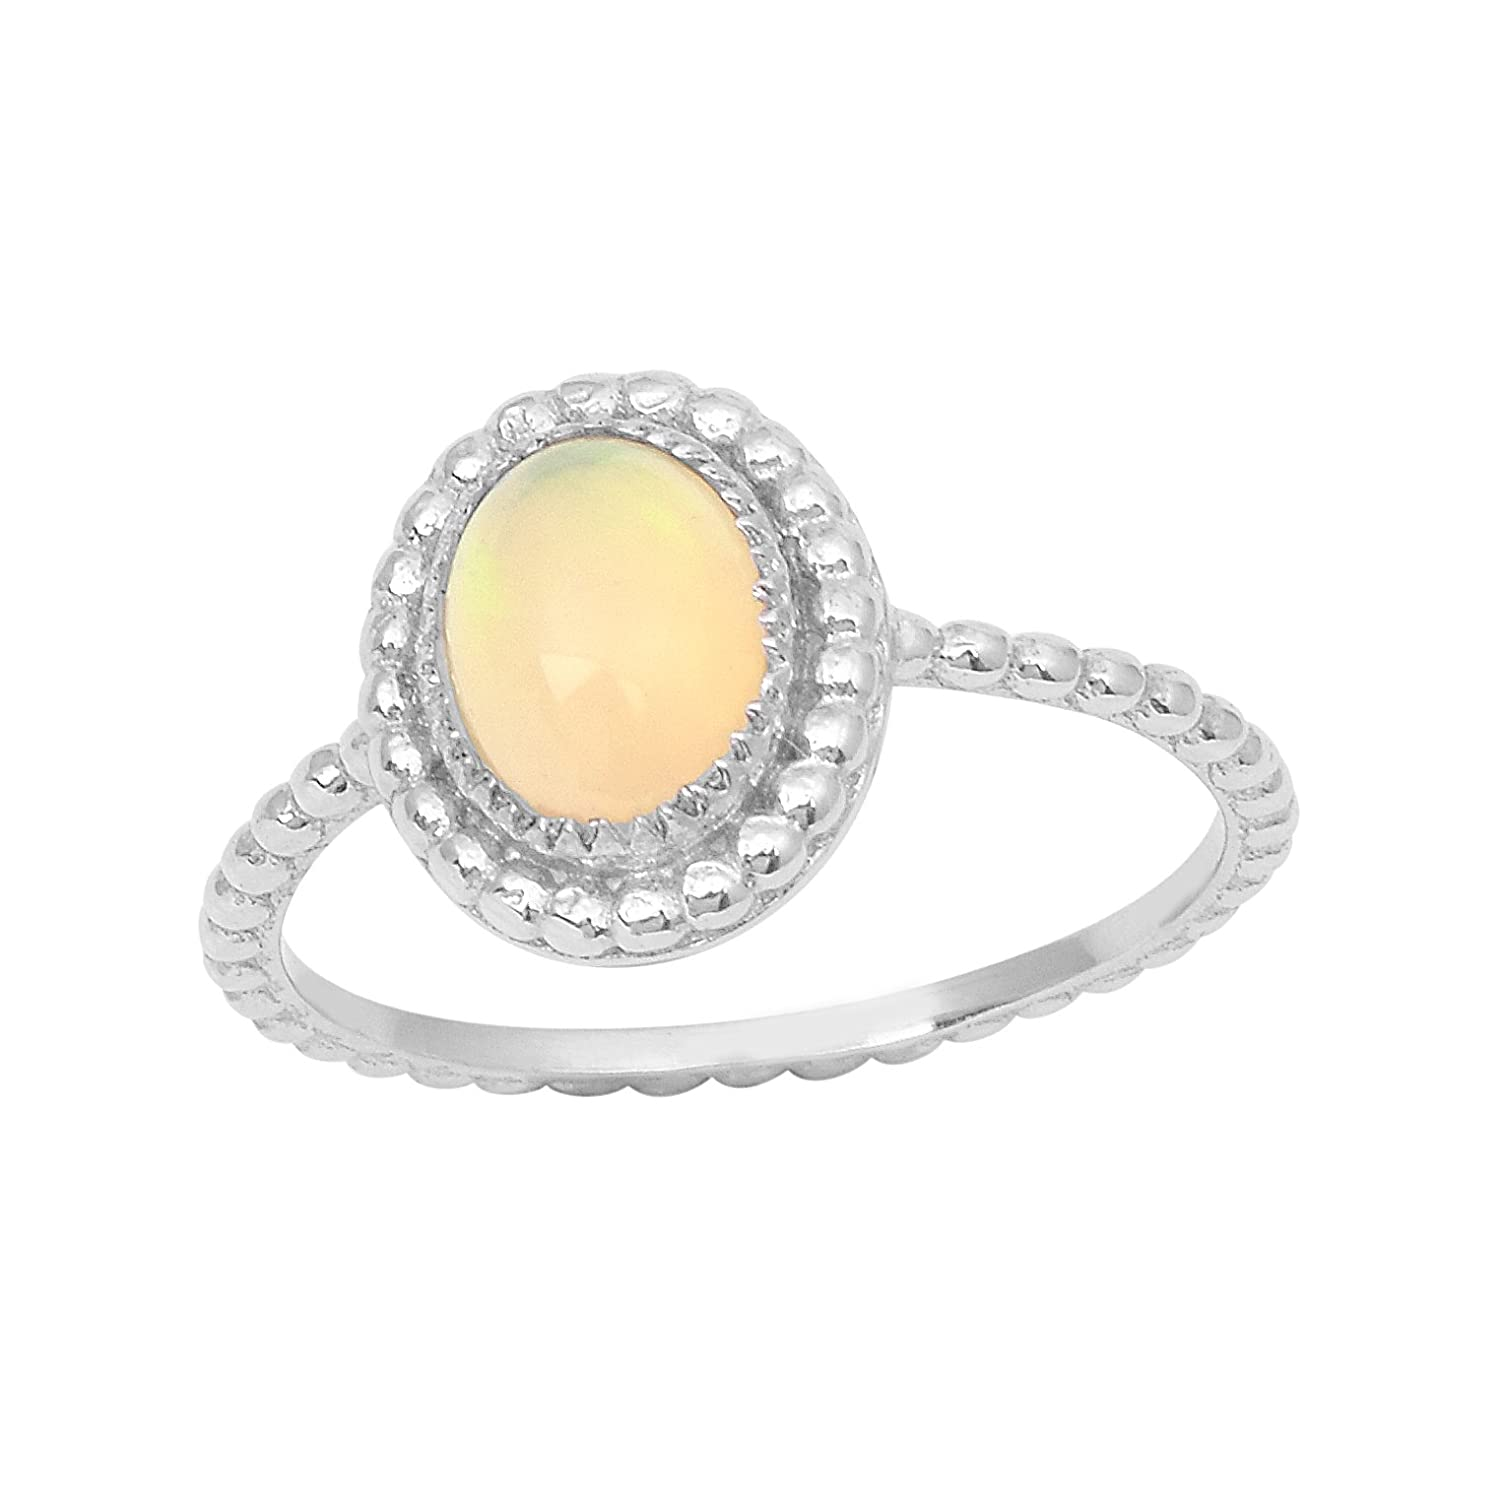 Shine Jewel Oval Cab Ethiopian Opal Gemstone Braided Shank Solitaire Ring 925 Sterling Silver